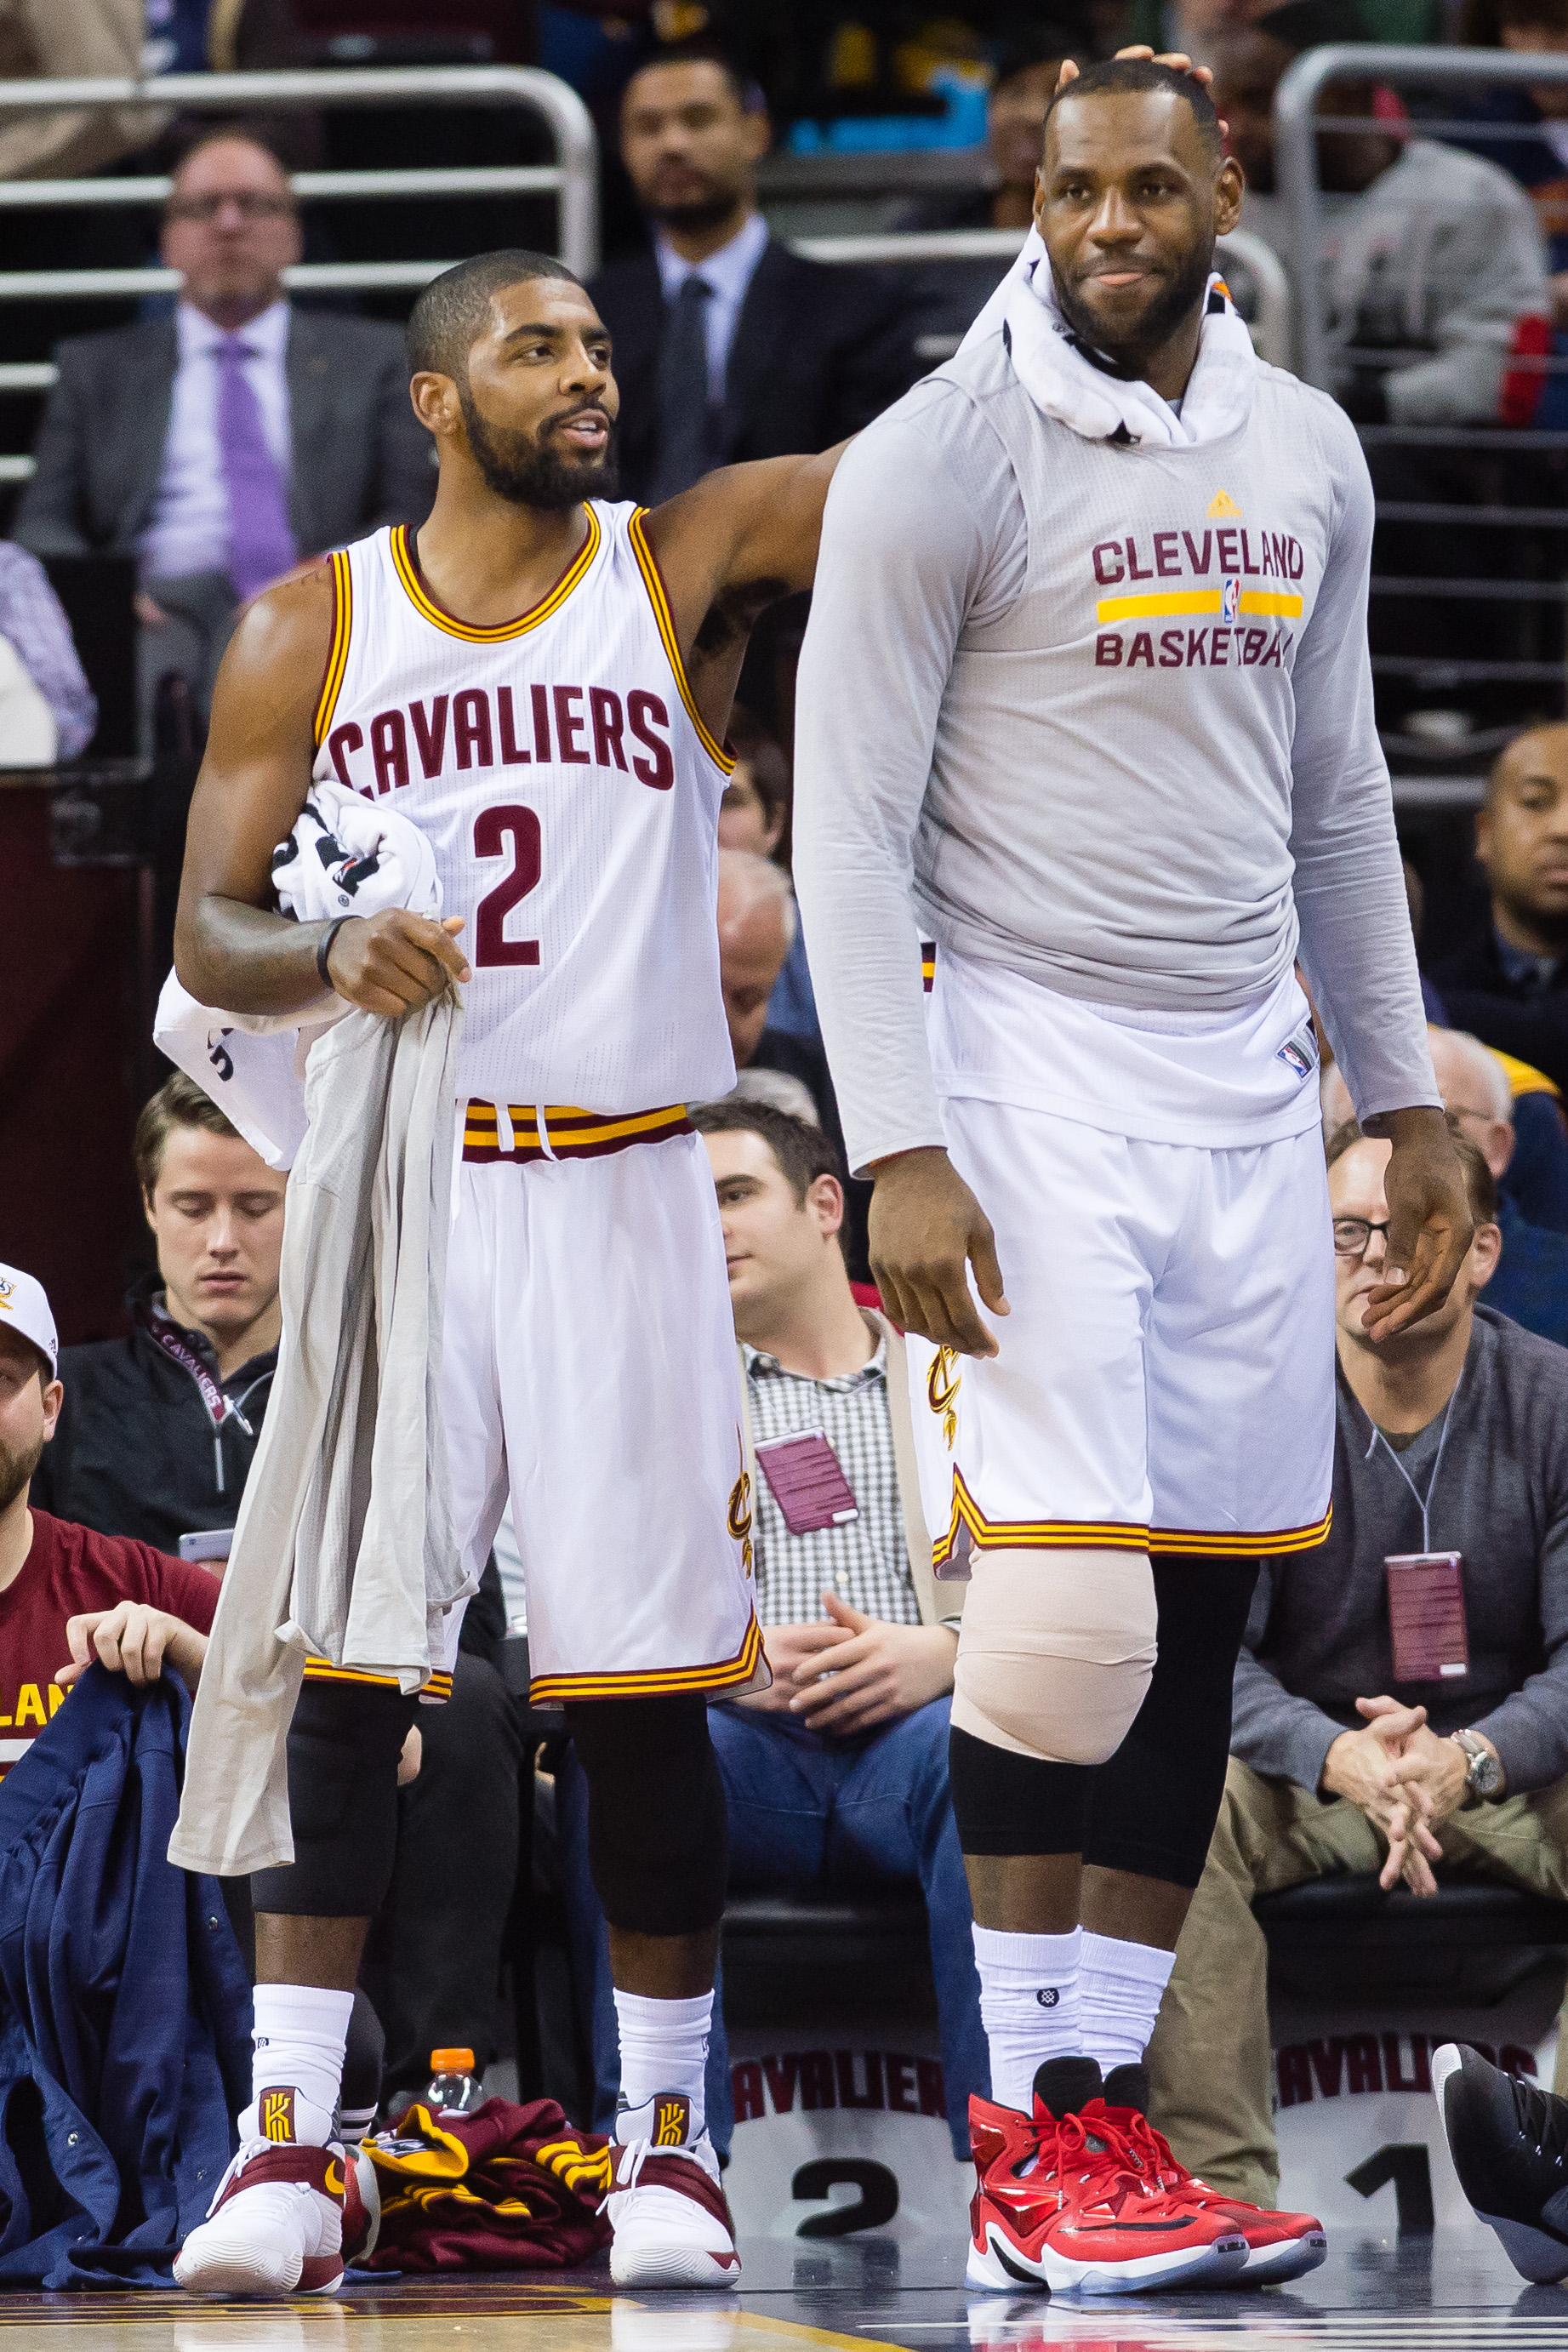 CLEVELAND, OH - DECEMBER 20: Kyrie Irving #2 and LeBron James #23 of the Cleveland Cavaliers celebrate on the sidelines during the second half against the Philadelphia 76ers at Quicken Loans Arena on December 20, 2015 in Cleveland, Ohio. The Cavaliers def